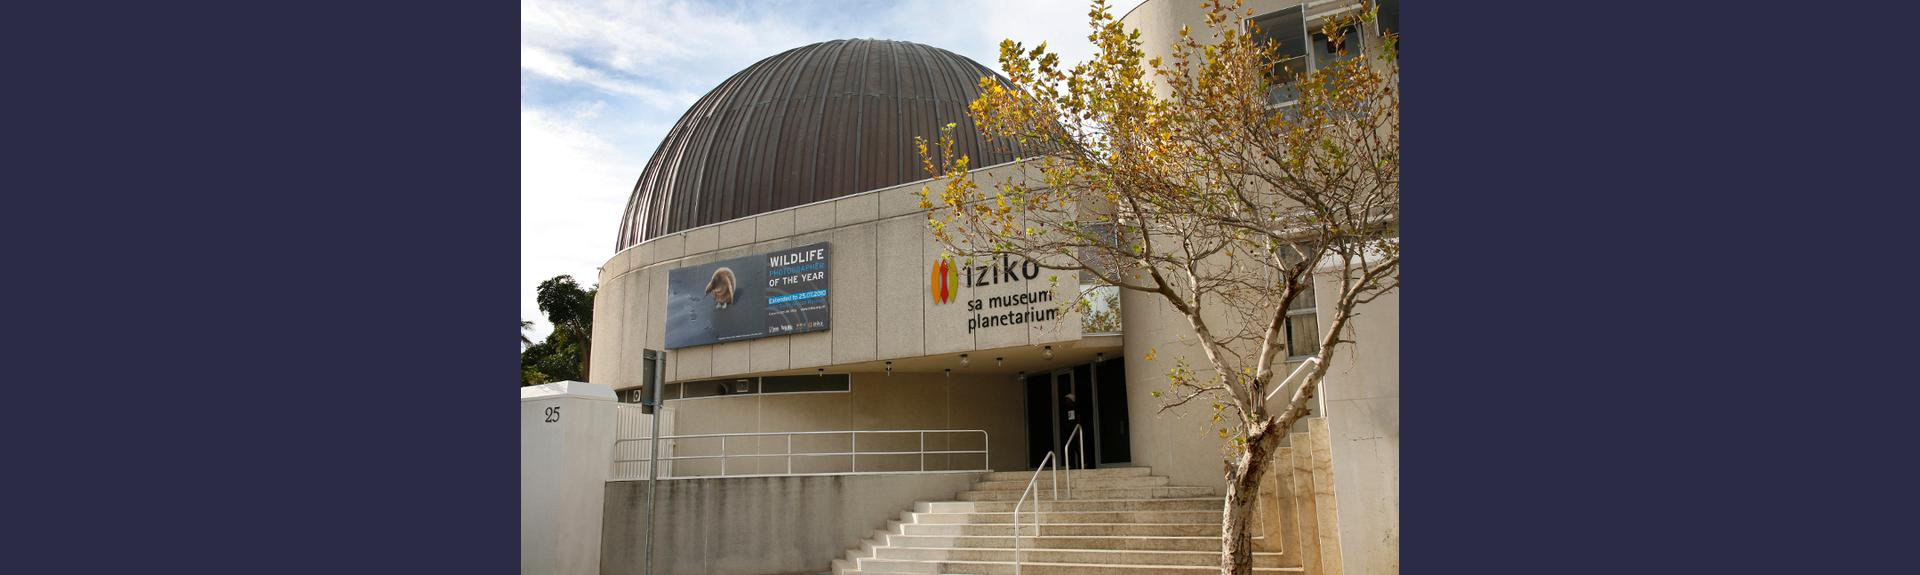 Iziko Planetarium family friendly activity in Cape Town